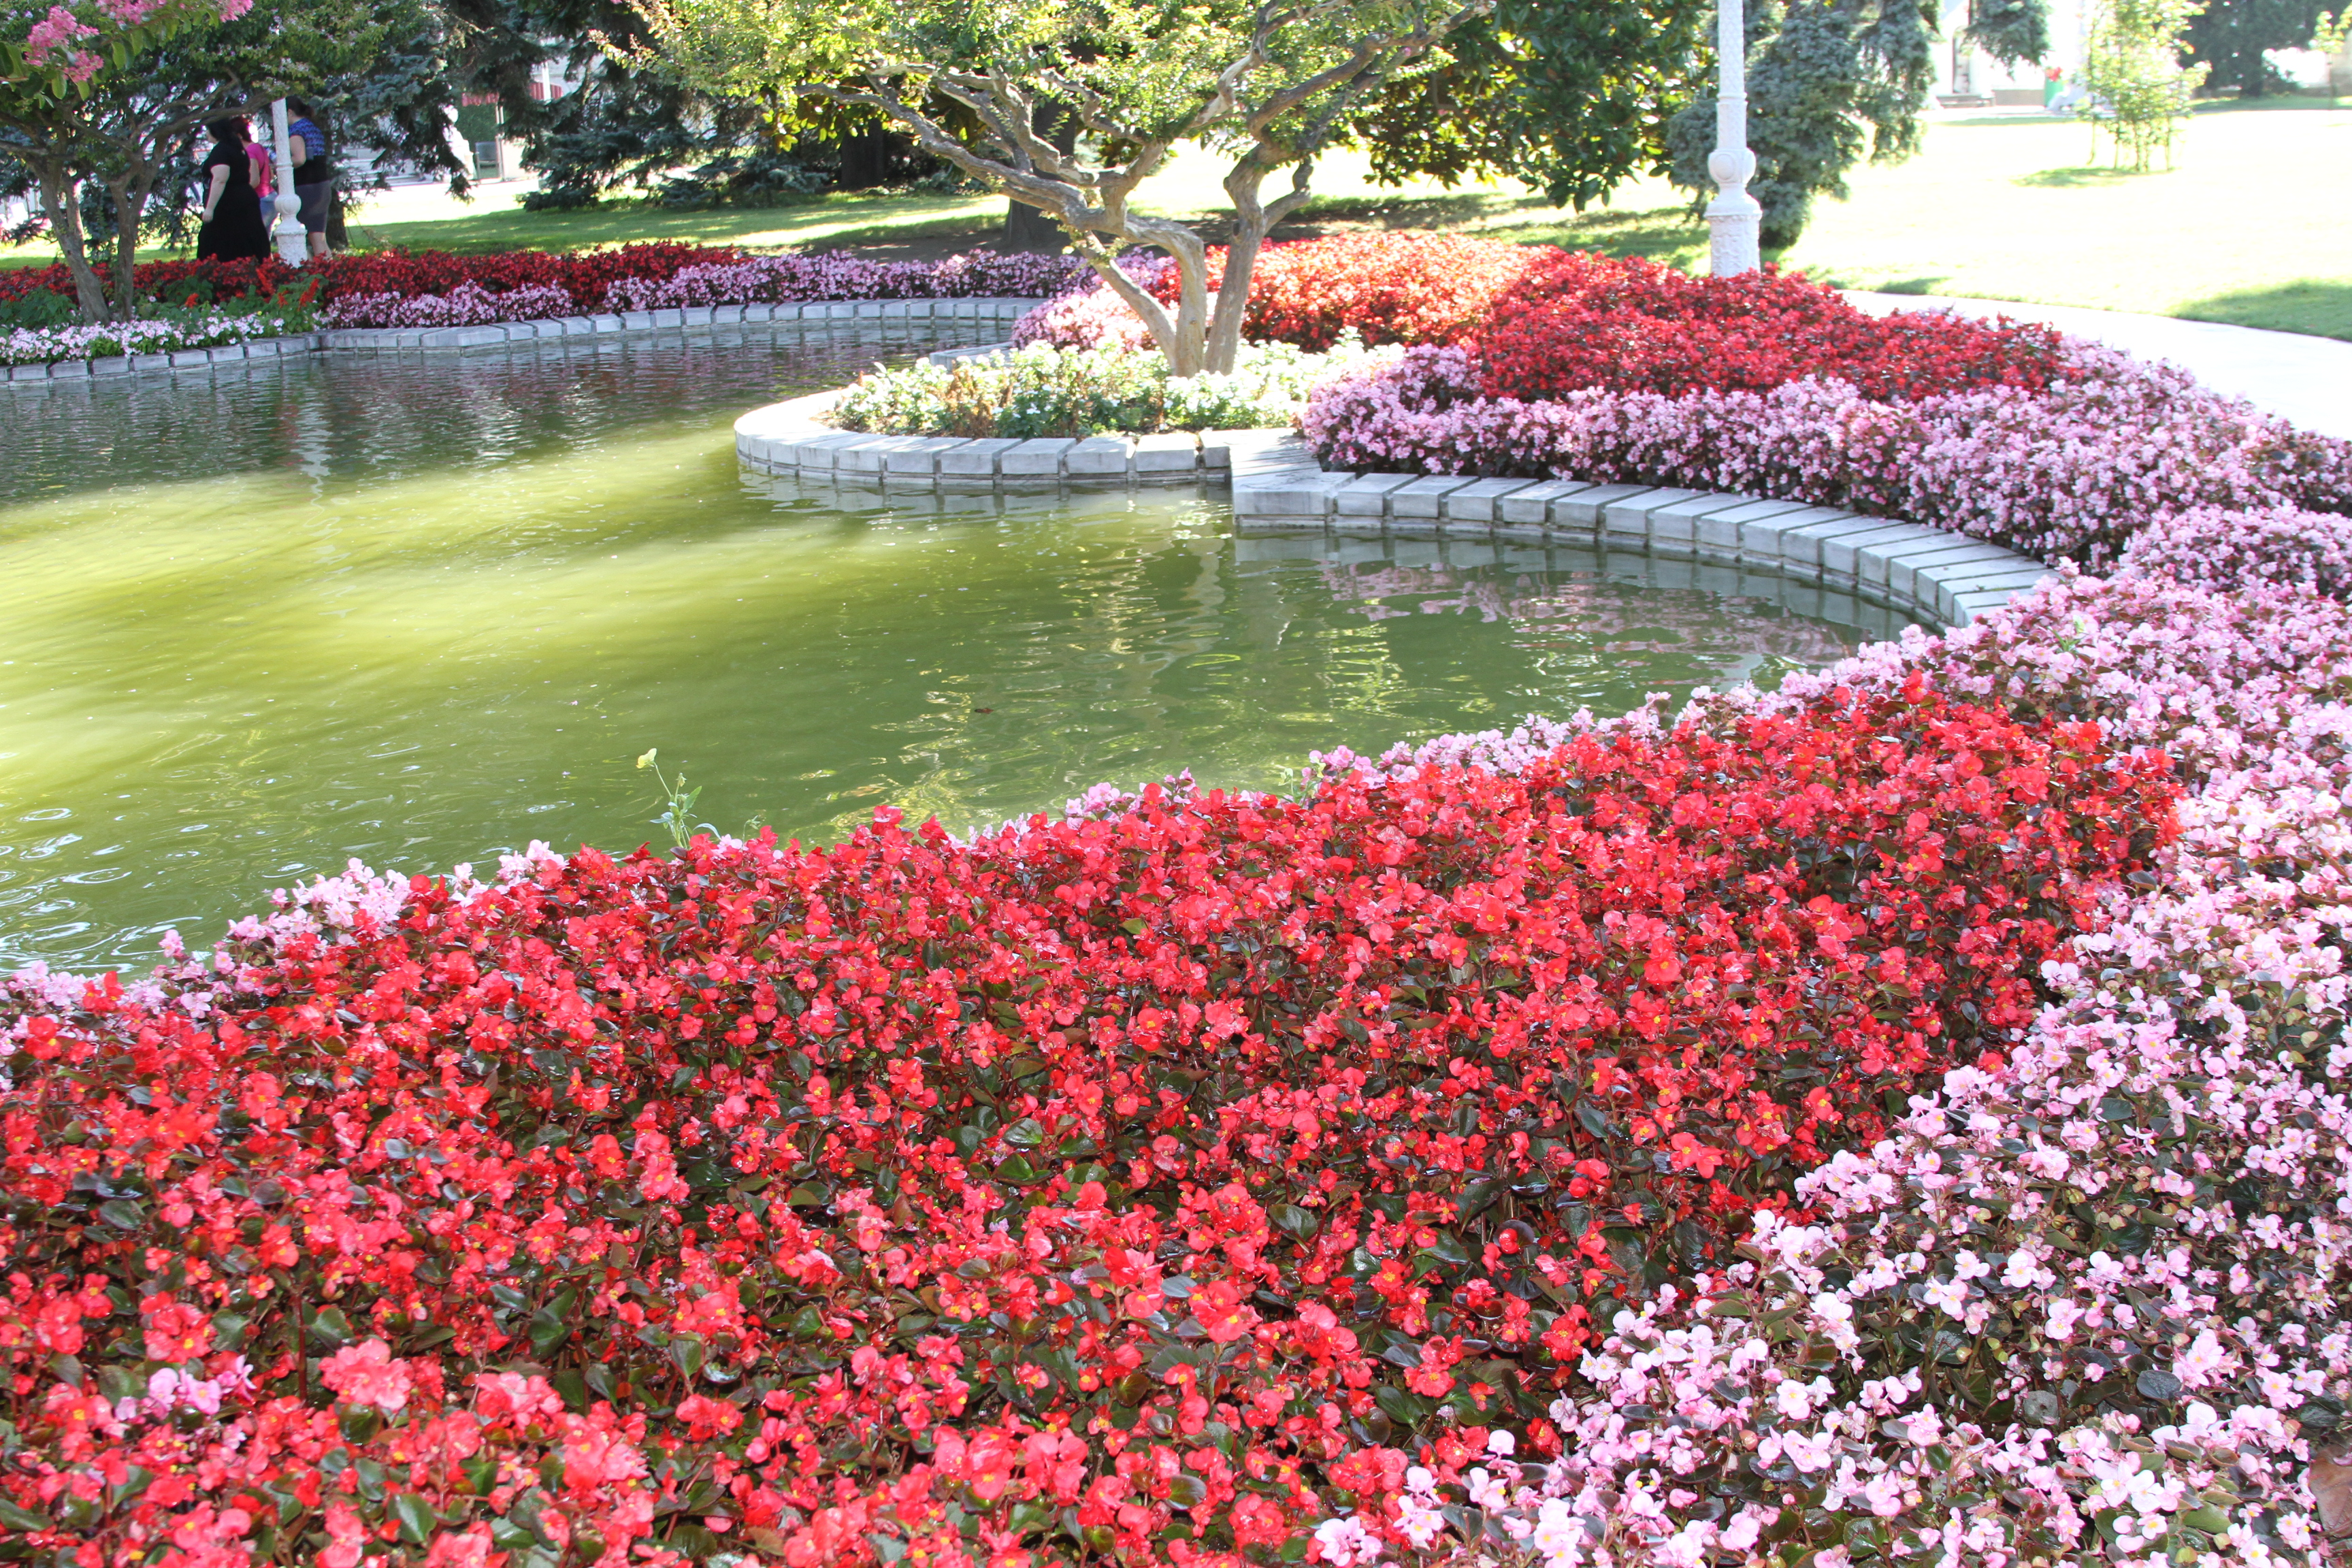 File:Flowers In The Garden Of Dolmabahçe Palace